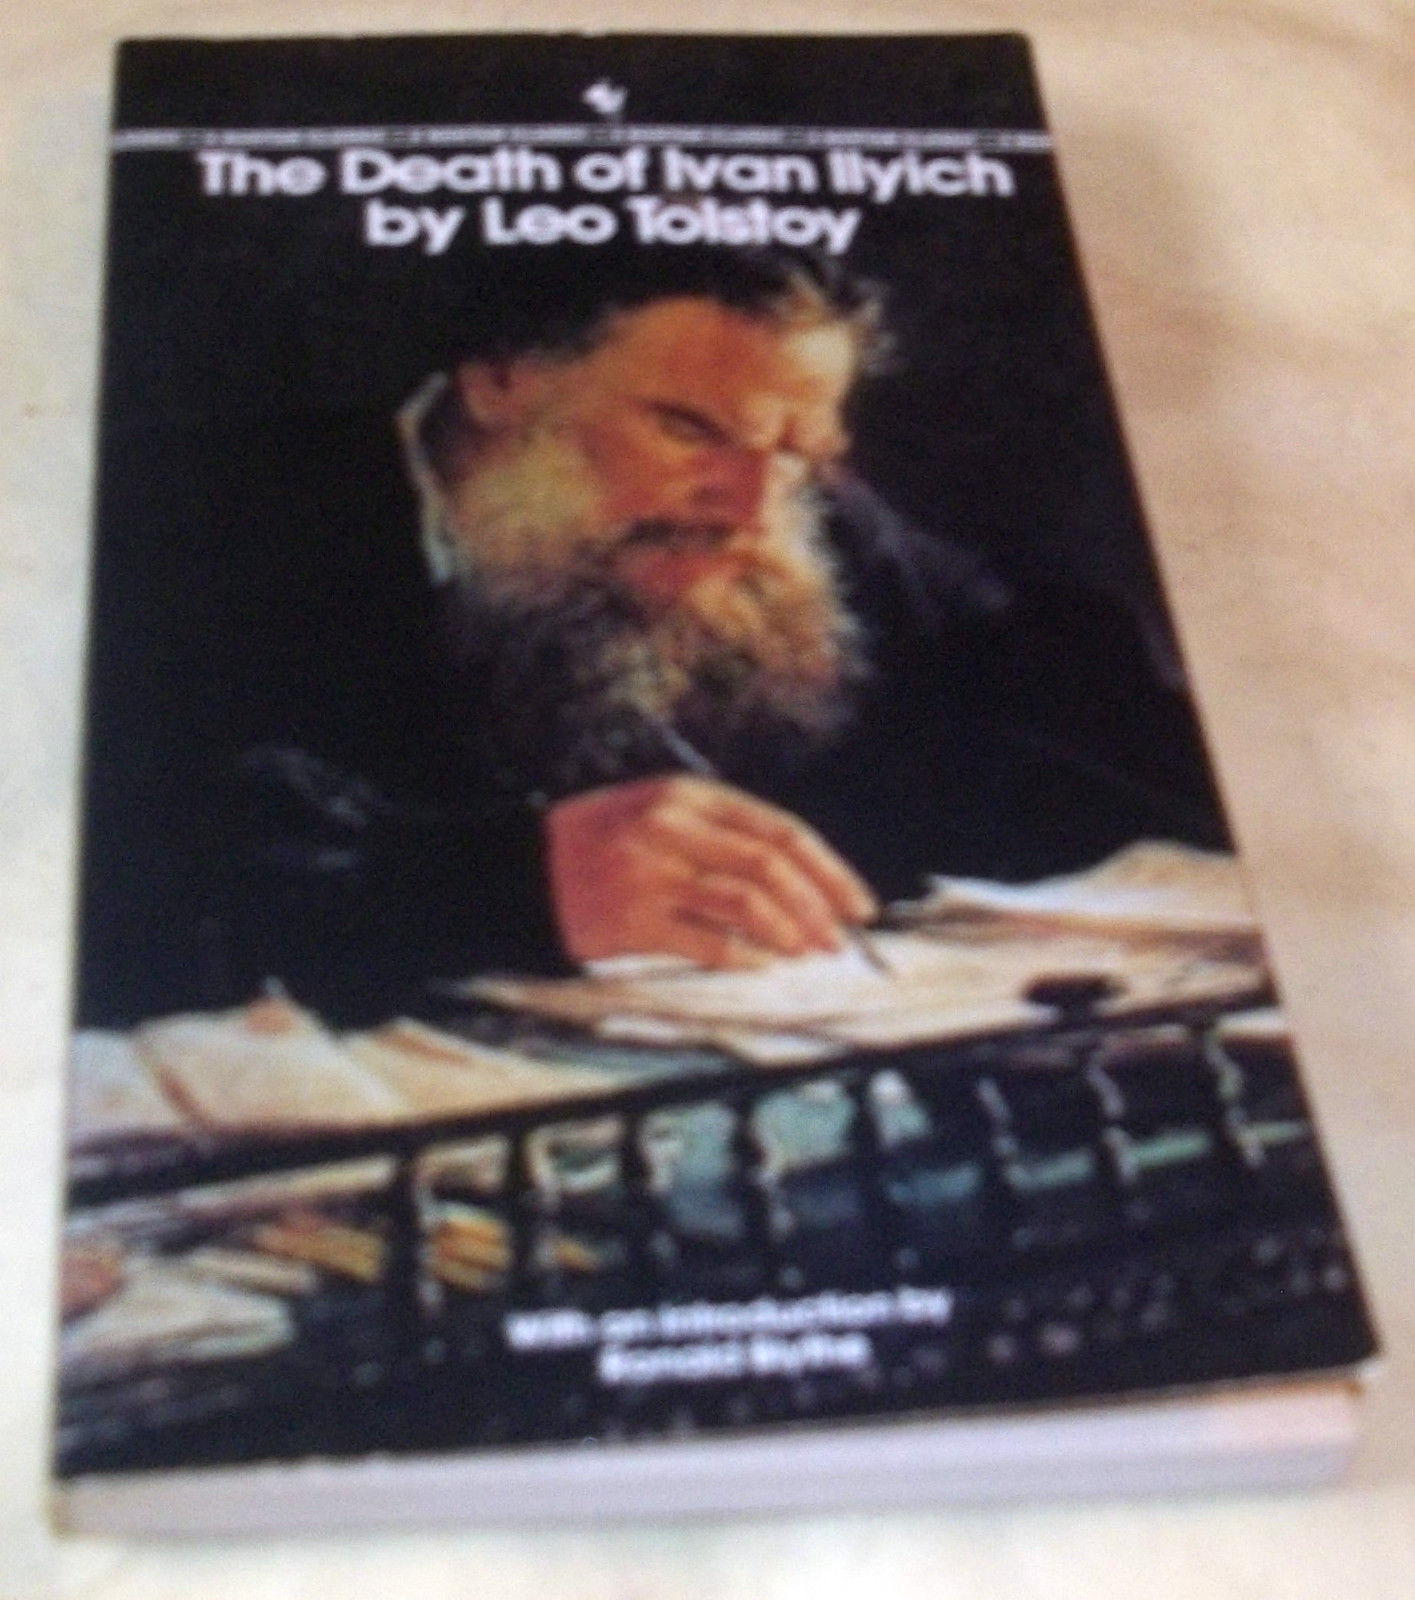 the romanticization of gerasims lower class in the death of ivan ilych a novella by leo tolstoy Leo tolstoy essay examples  the romanticization of gerasim's lower class in the death of ivan ilych, a novella by leo tolstoy.